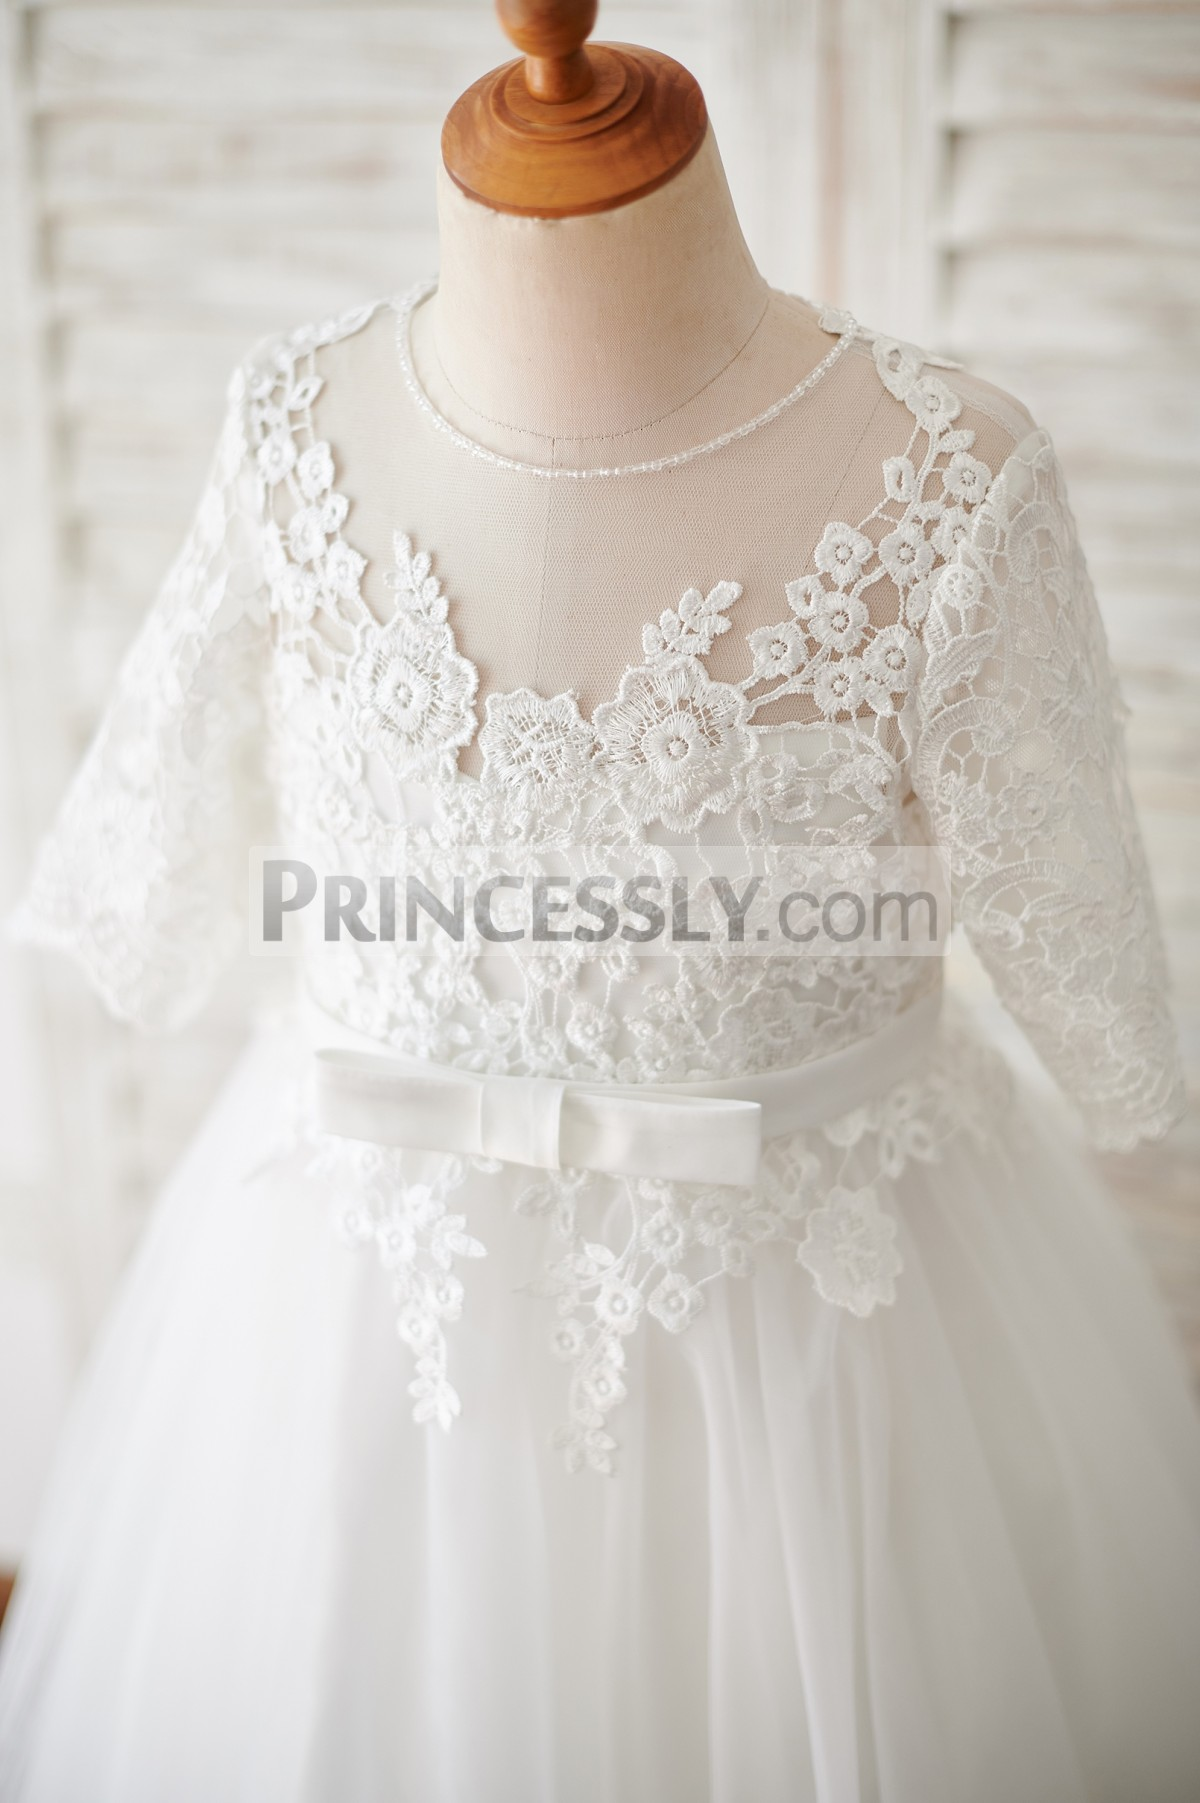 Elbow sleeves beaded neckline crochet lace bodice